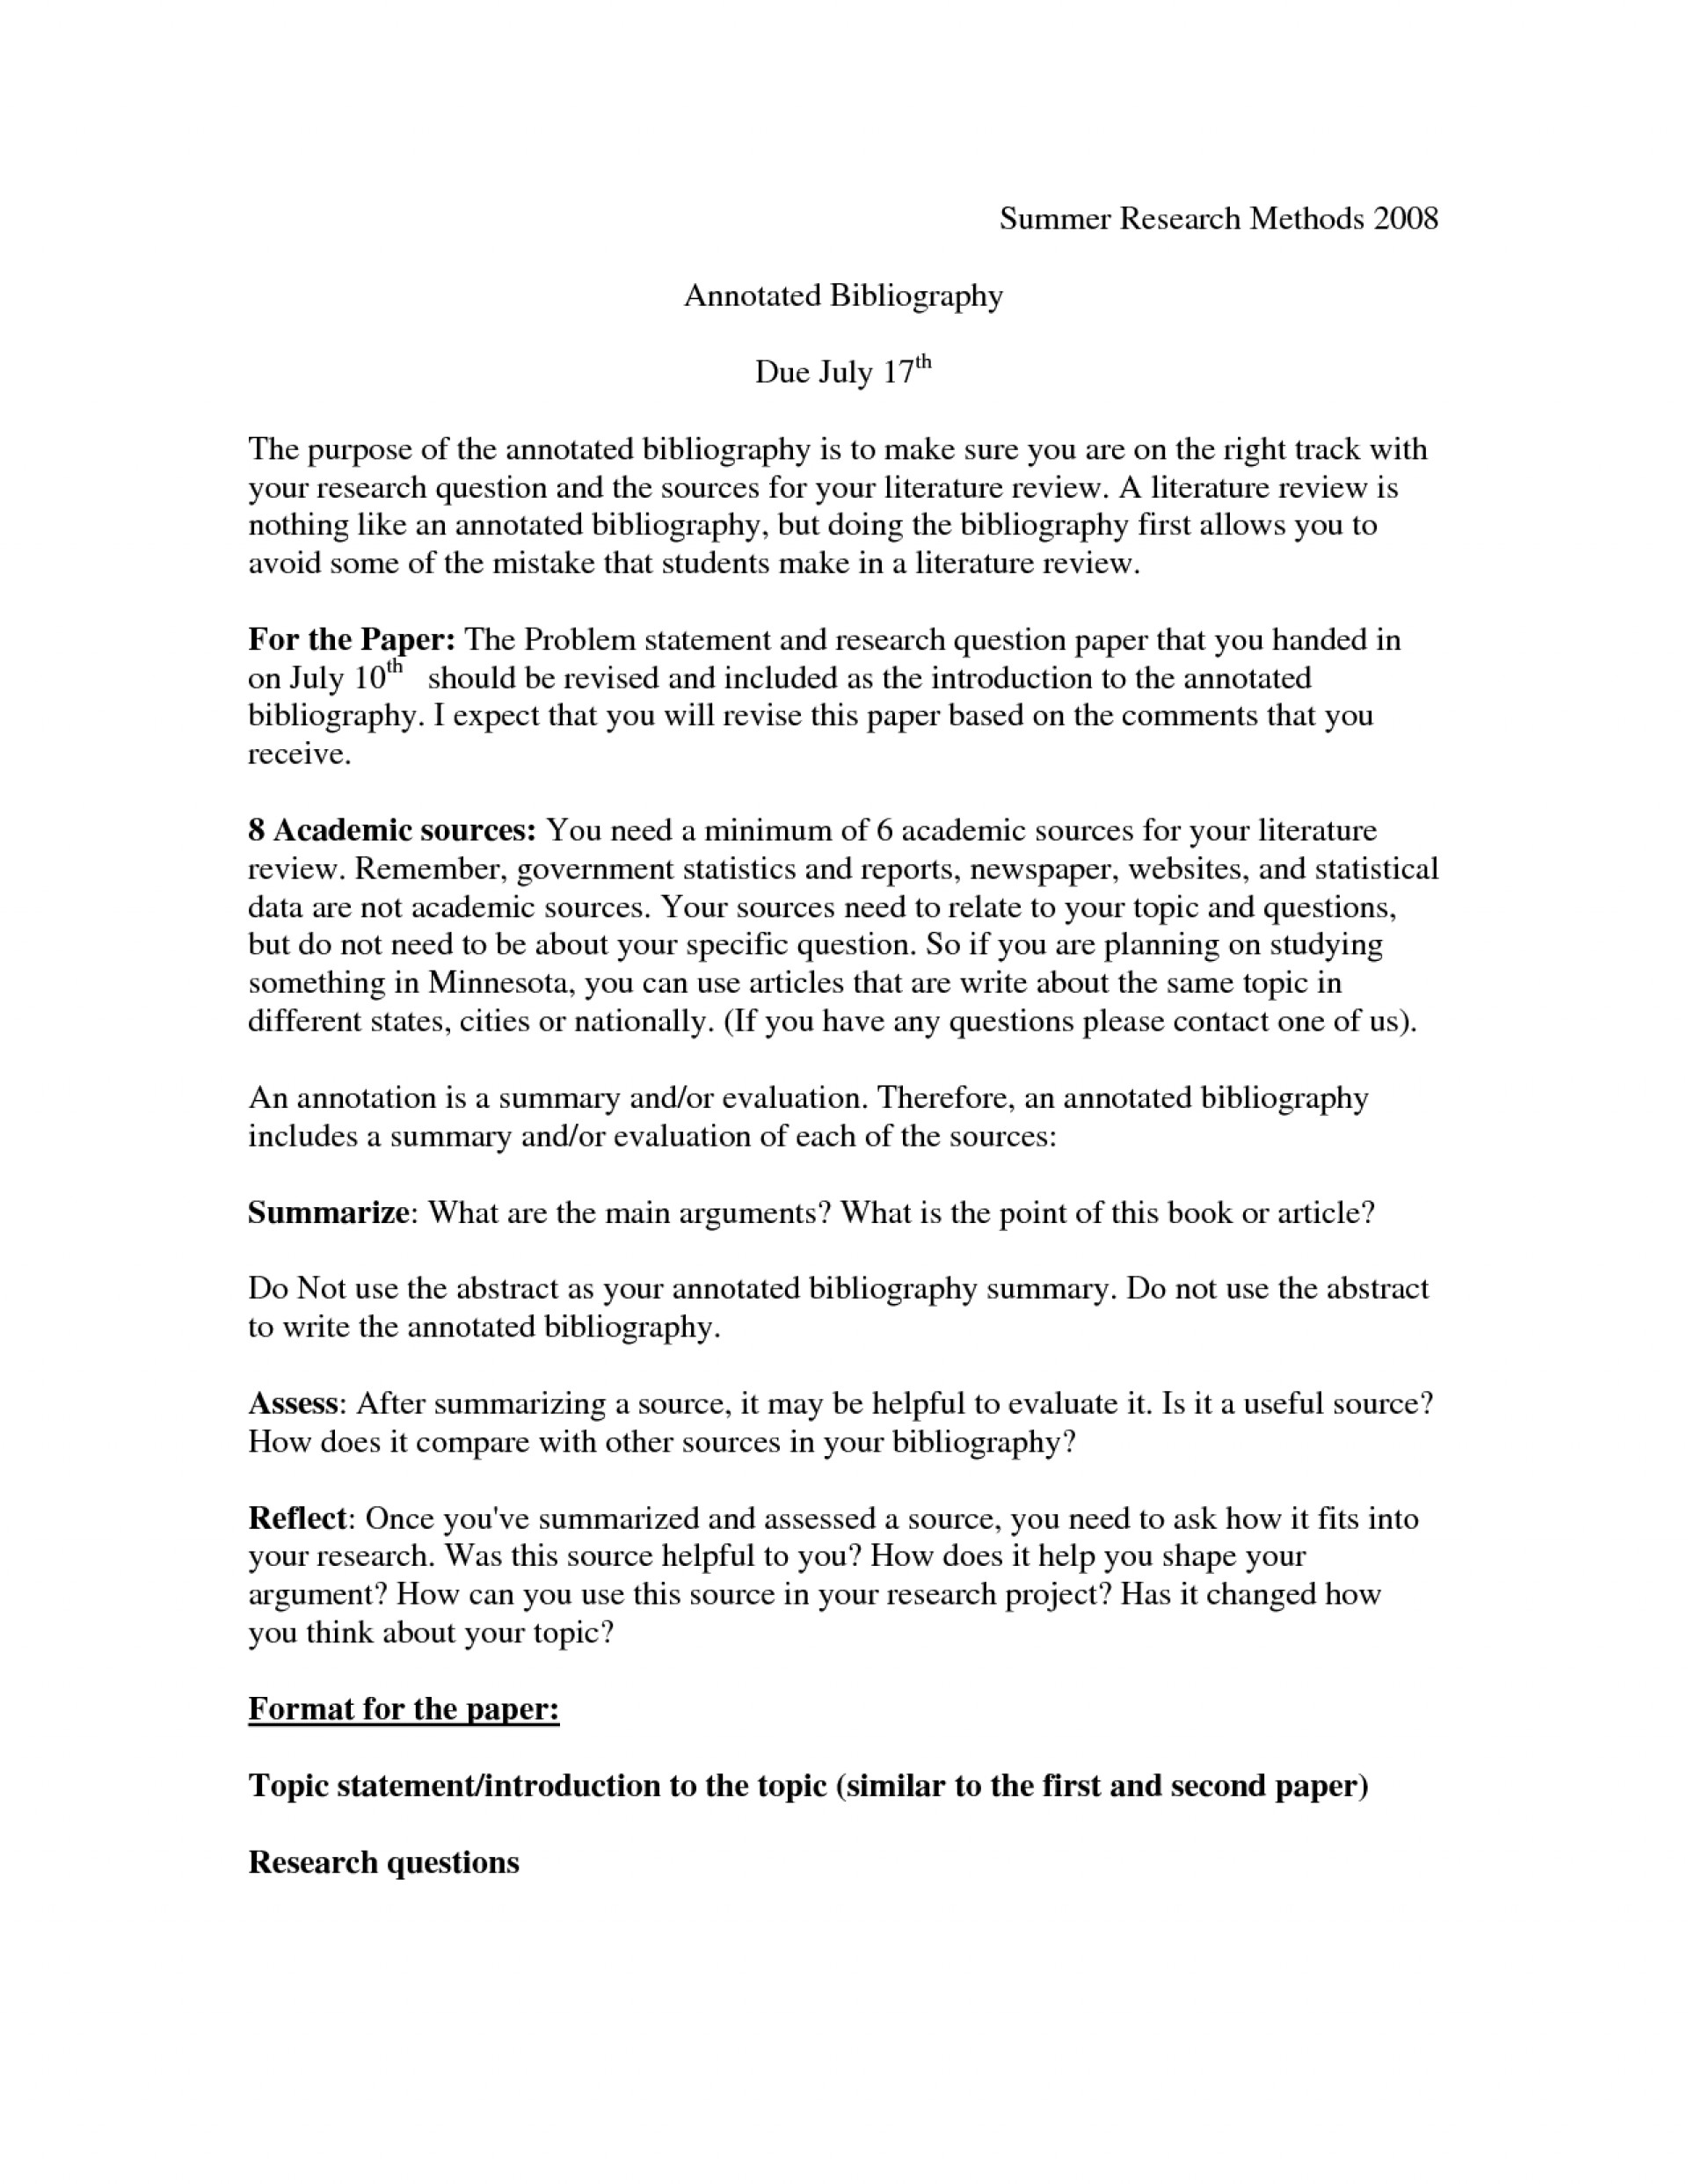 019 Bunch Ideas Of Annotated Bibliography Research Paper Cute Sample For Health Topics To Write Breathtaking A On 1920